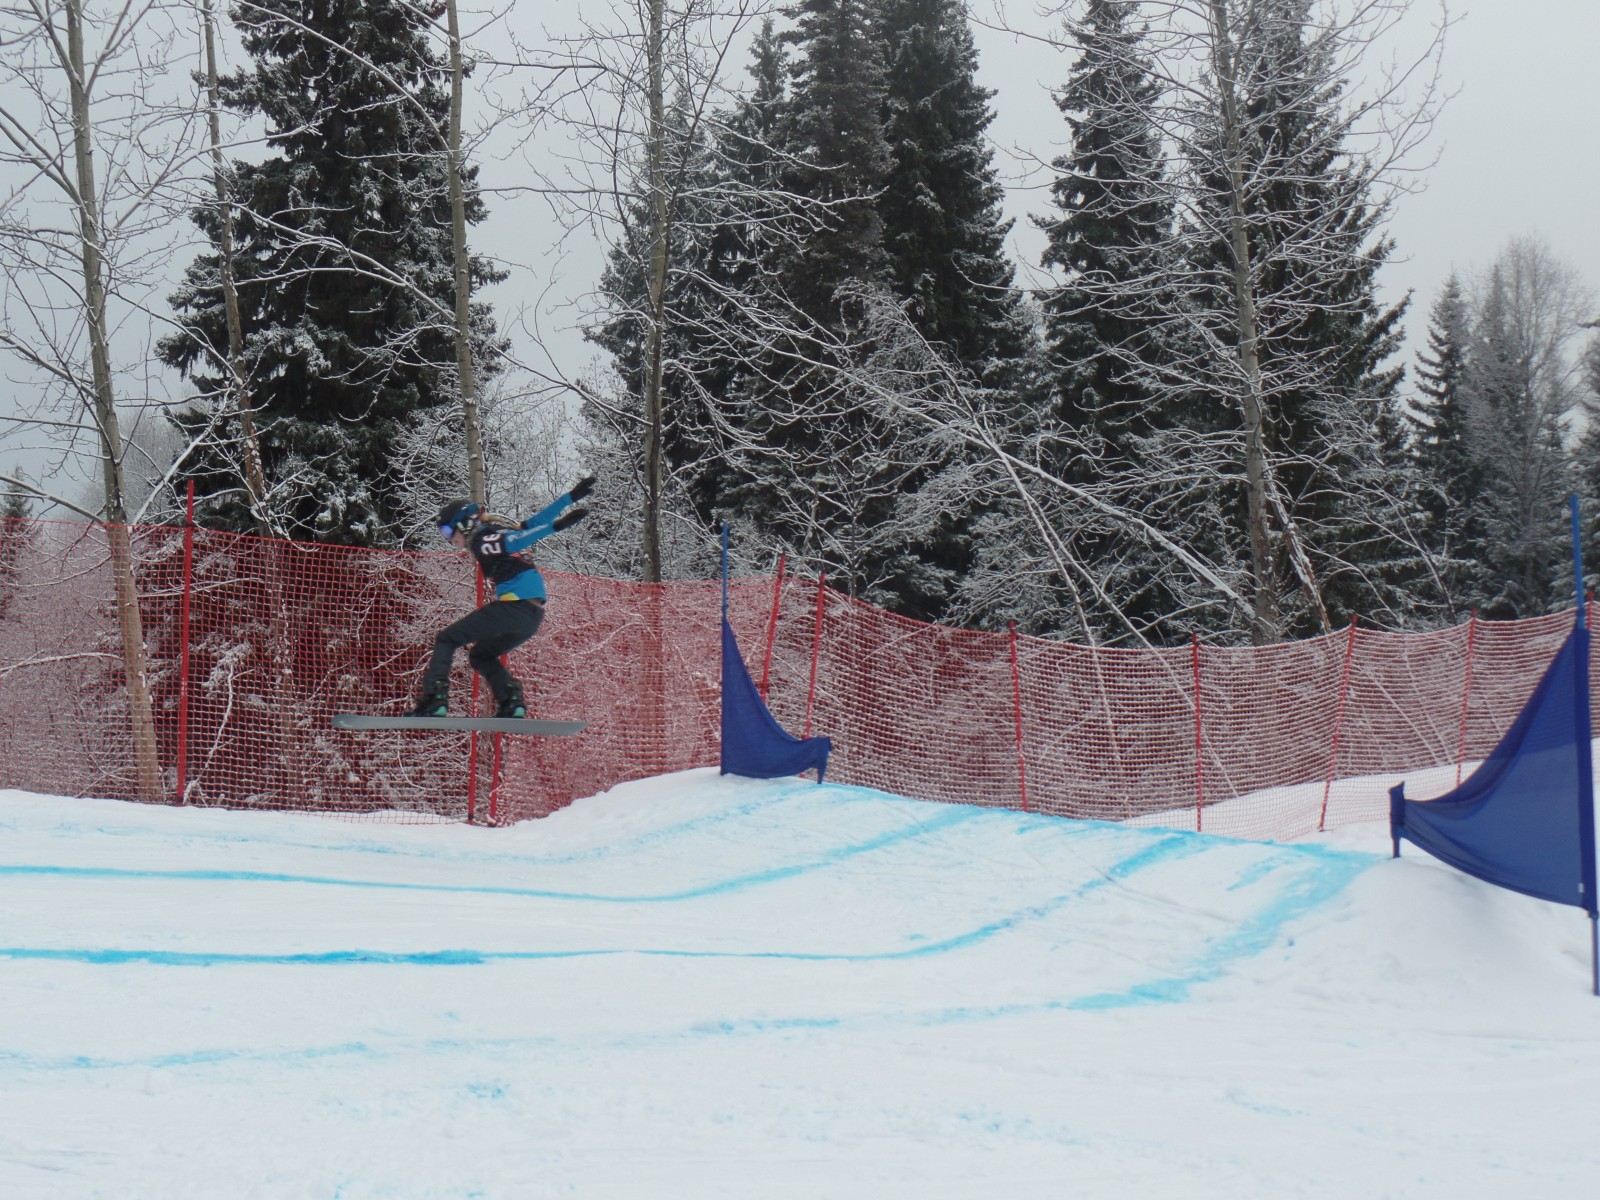 FunChaser @ Nor-Am Snowboard Cross Competition